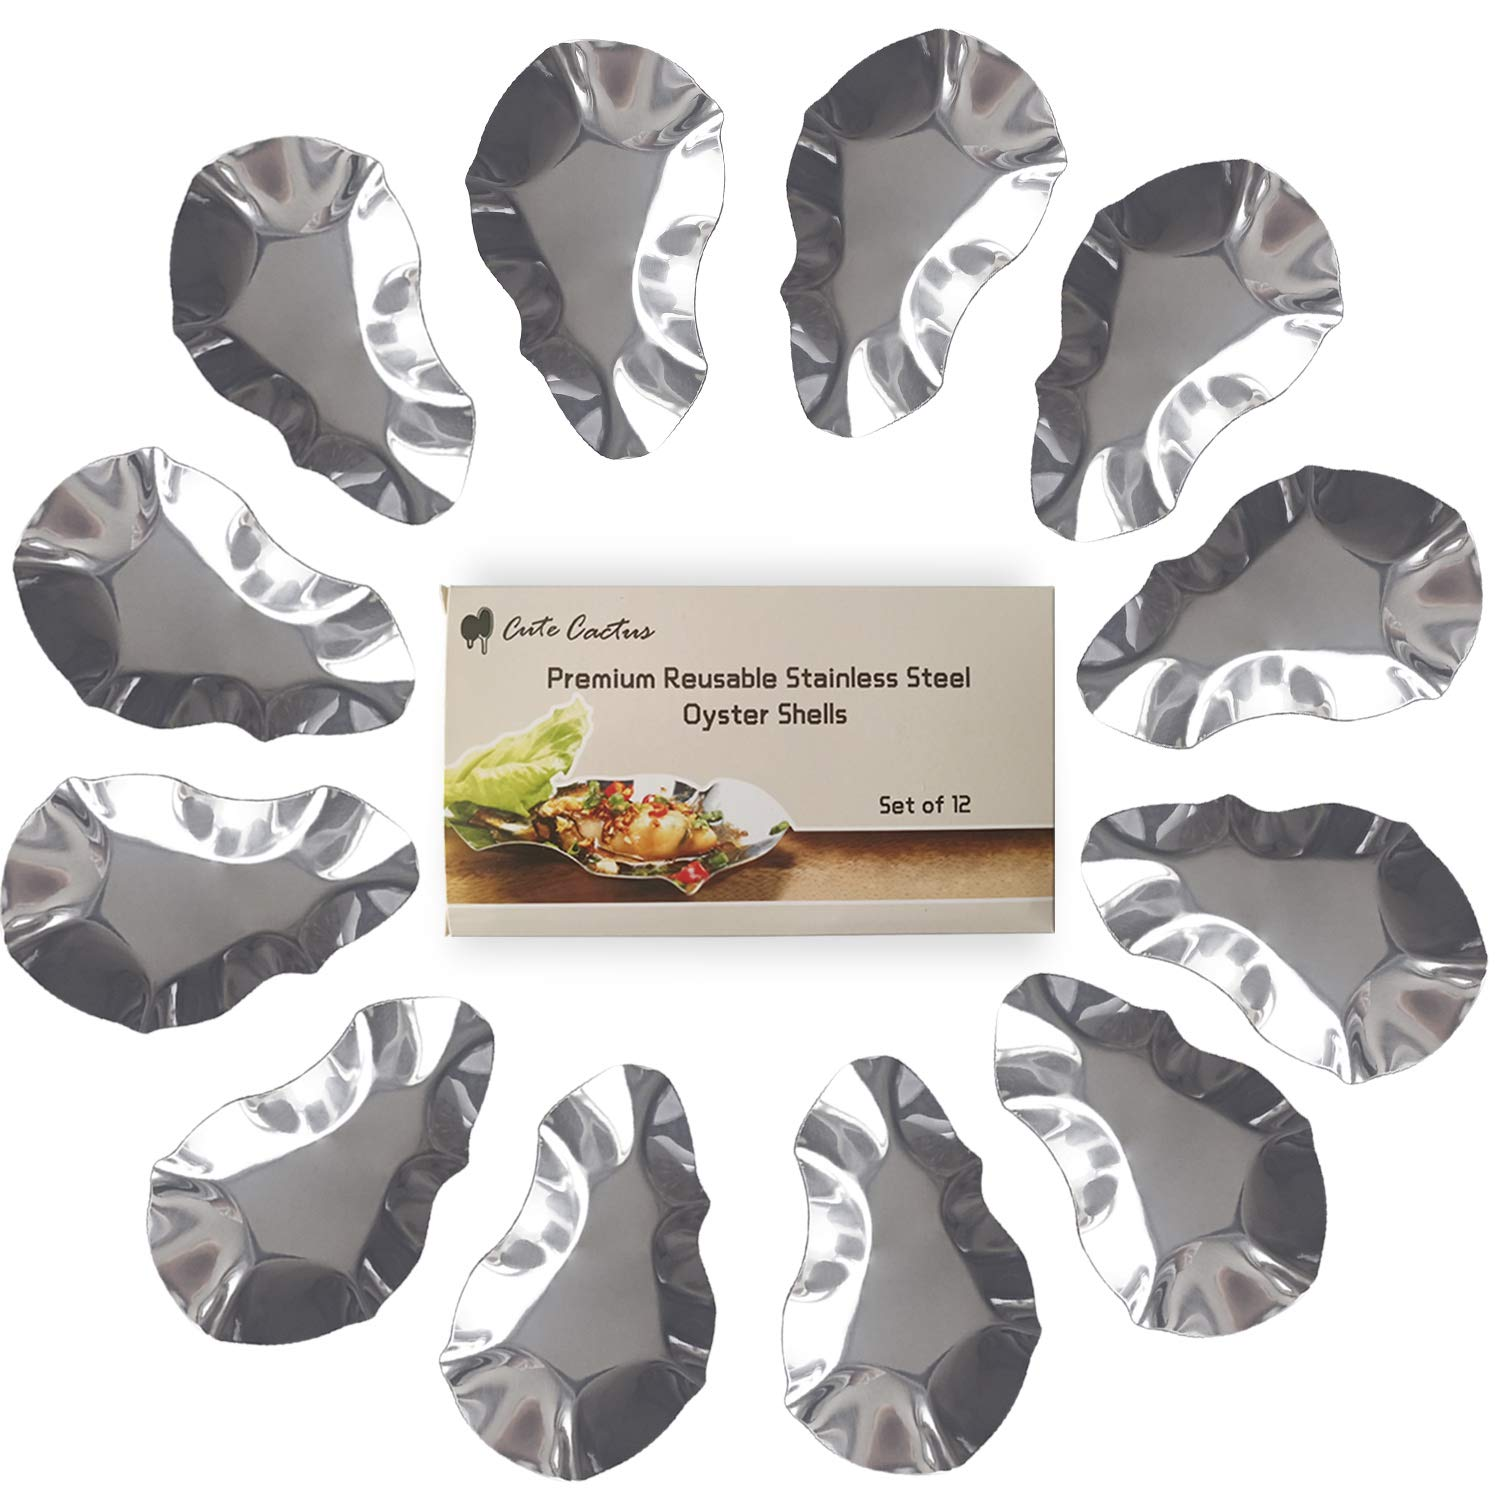 Premium Reusable Stainless Steel Oyster Shells, Set of 12, Great for Seafood of all Kind (12 pieces per pack)